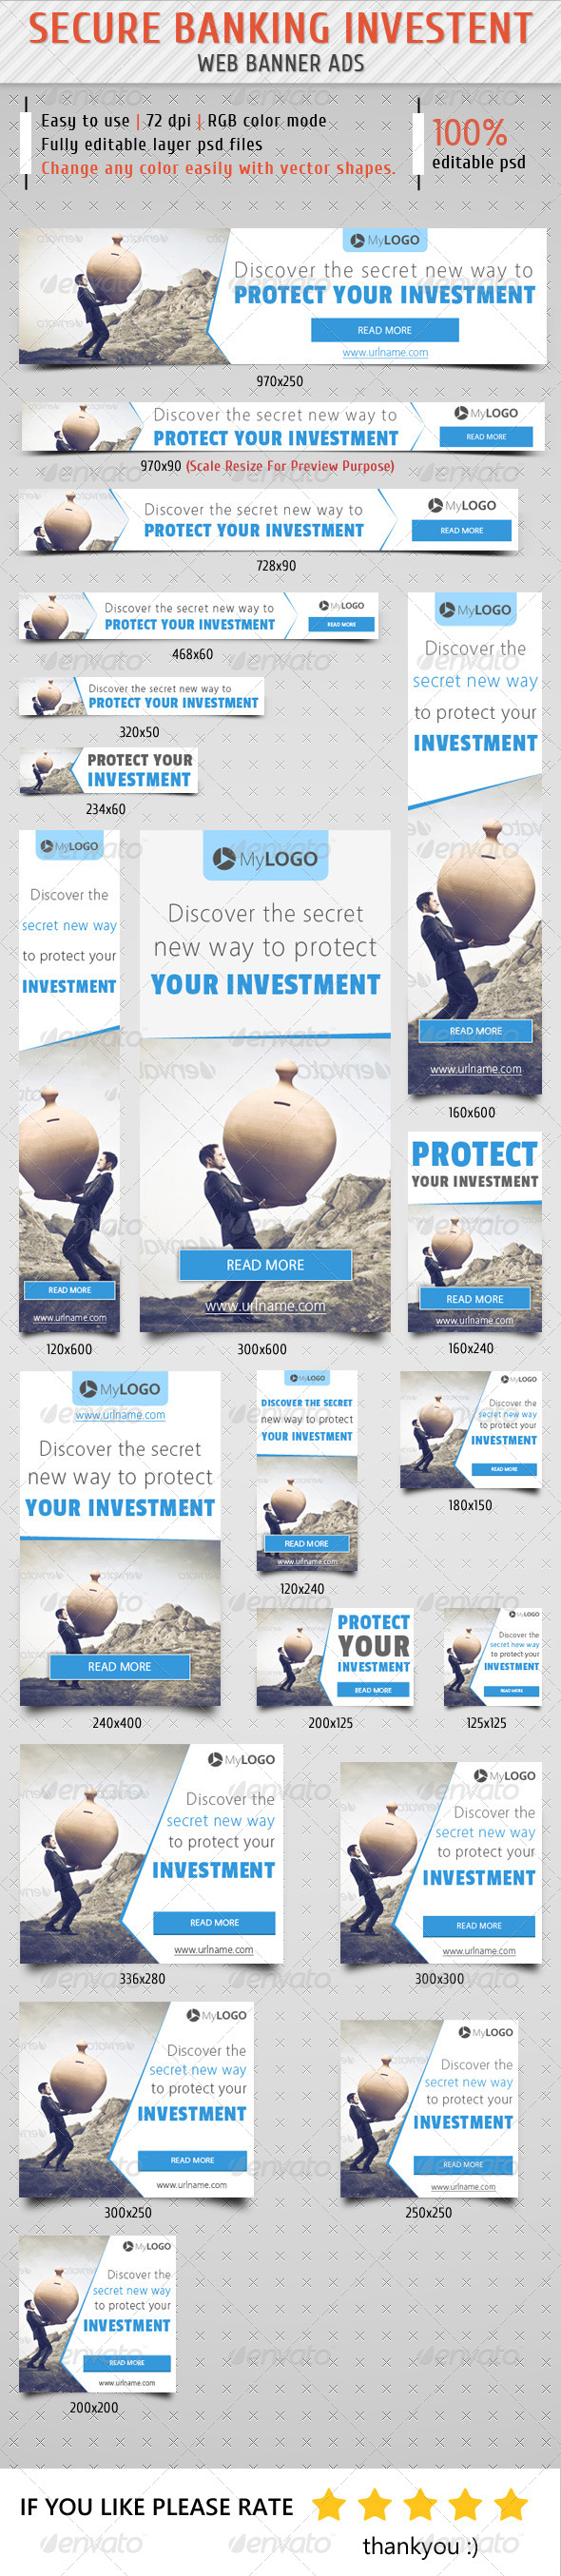 GraphicRiver Secure Banking Investment Web Banner Ads 8607043